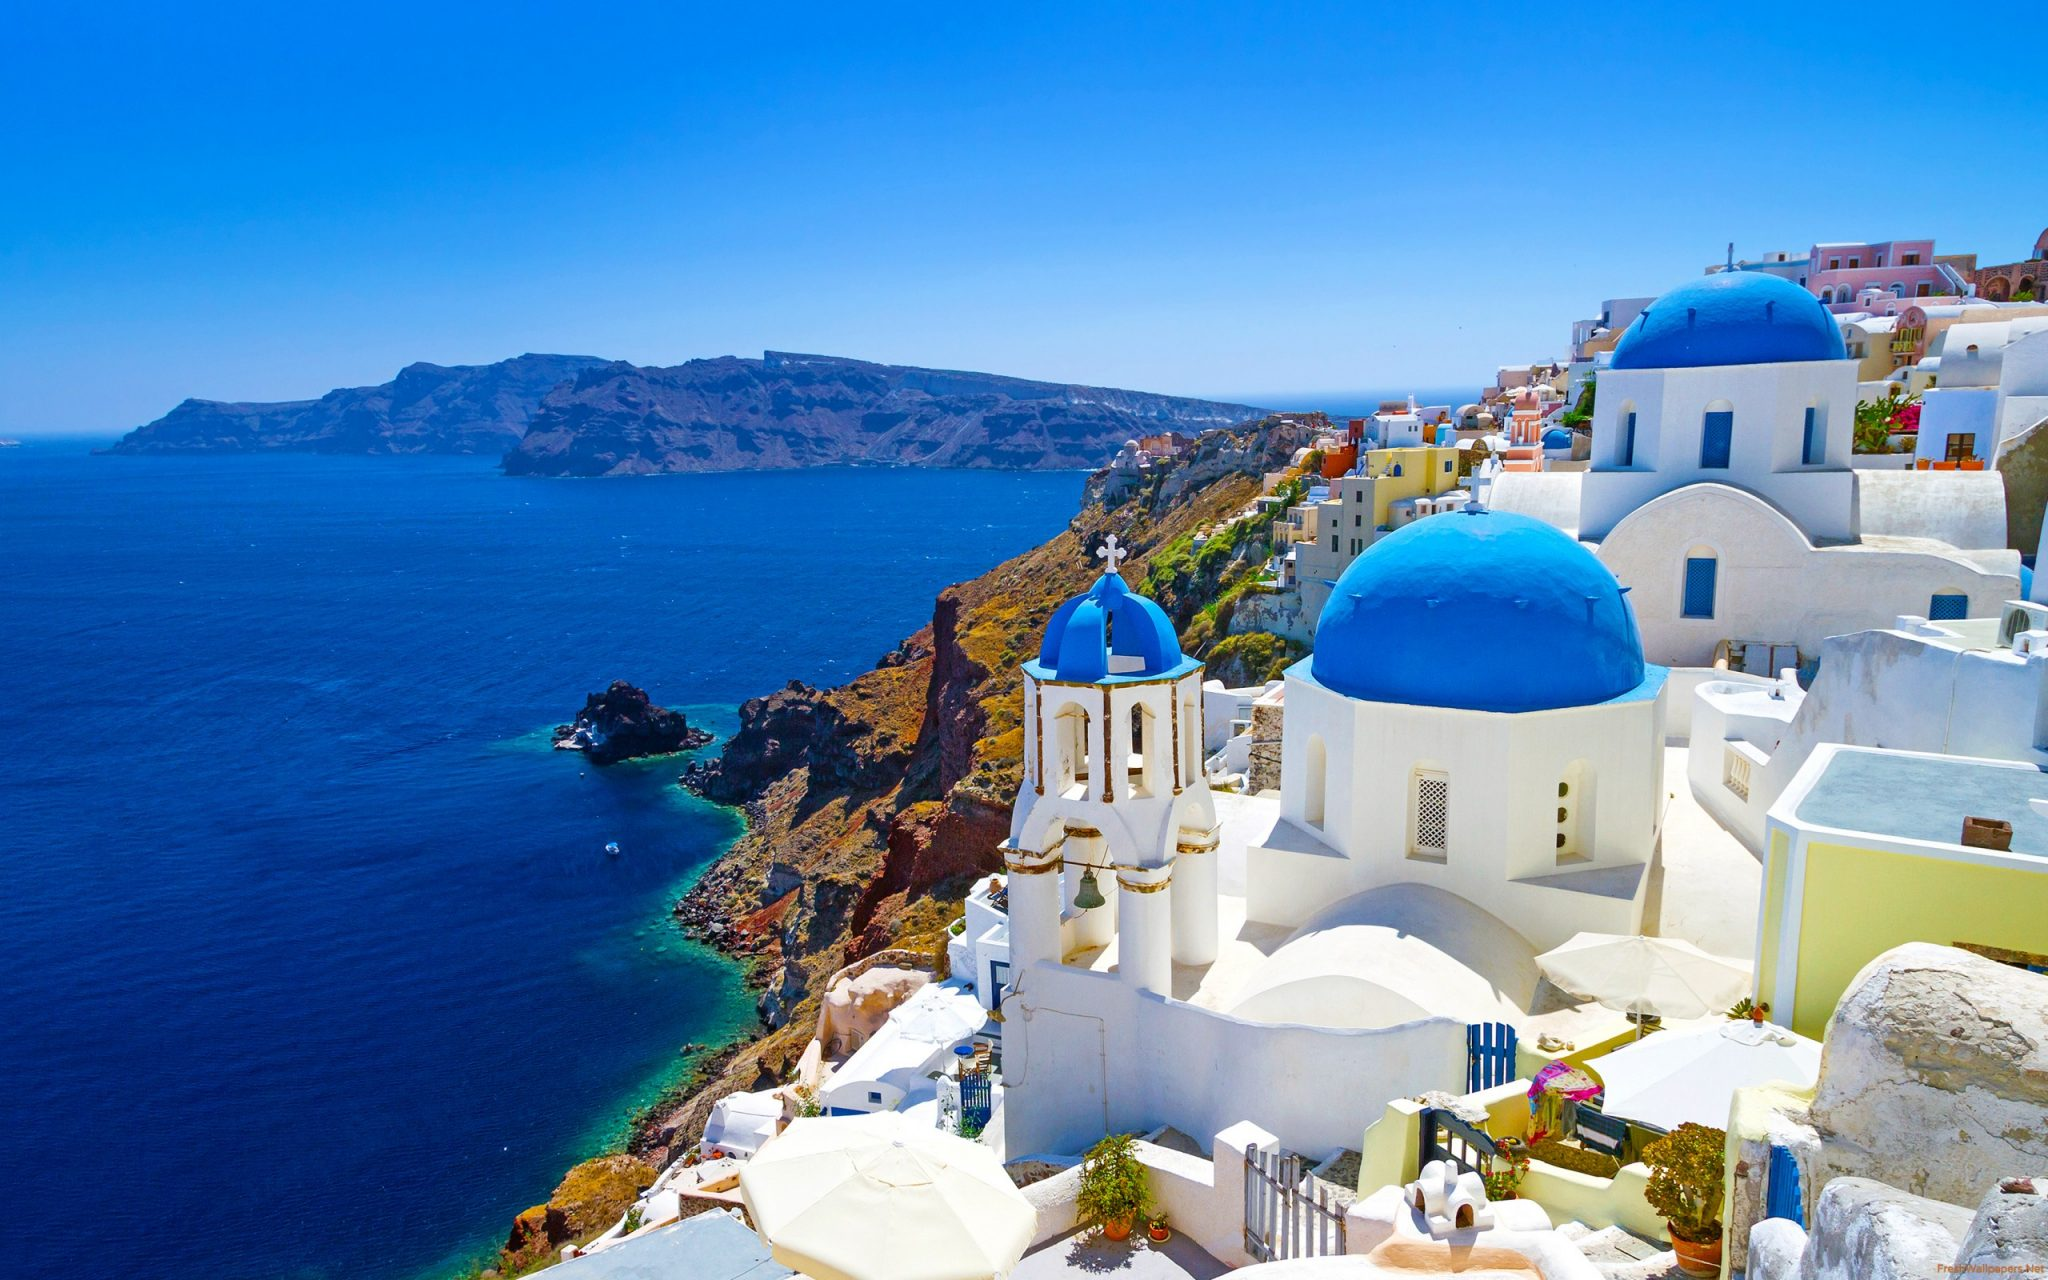 Mykonos, Santorini Crete and Patmos 4 days cruise